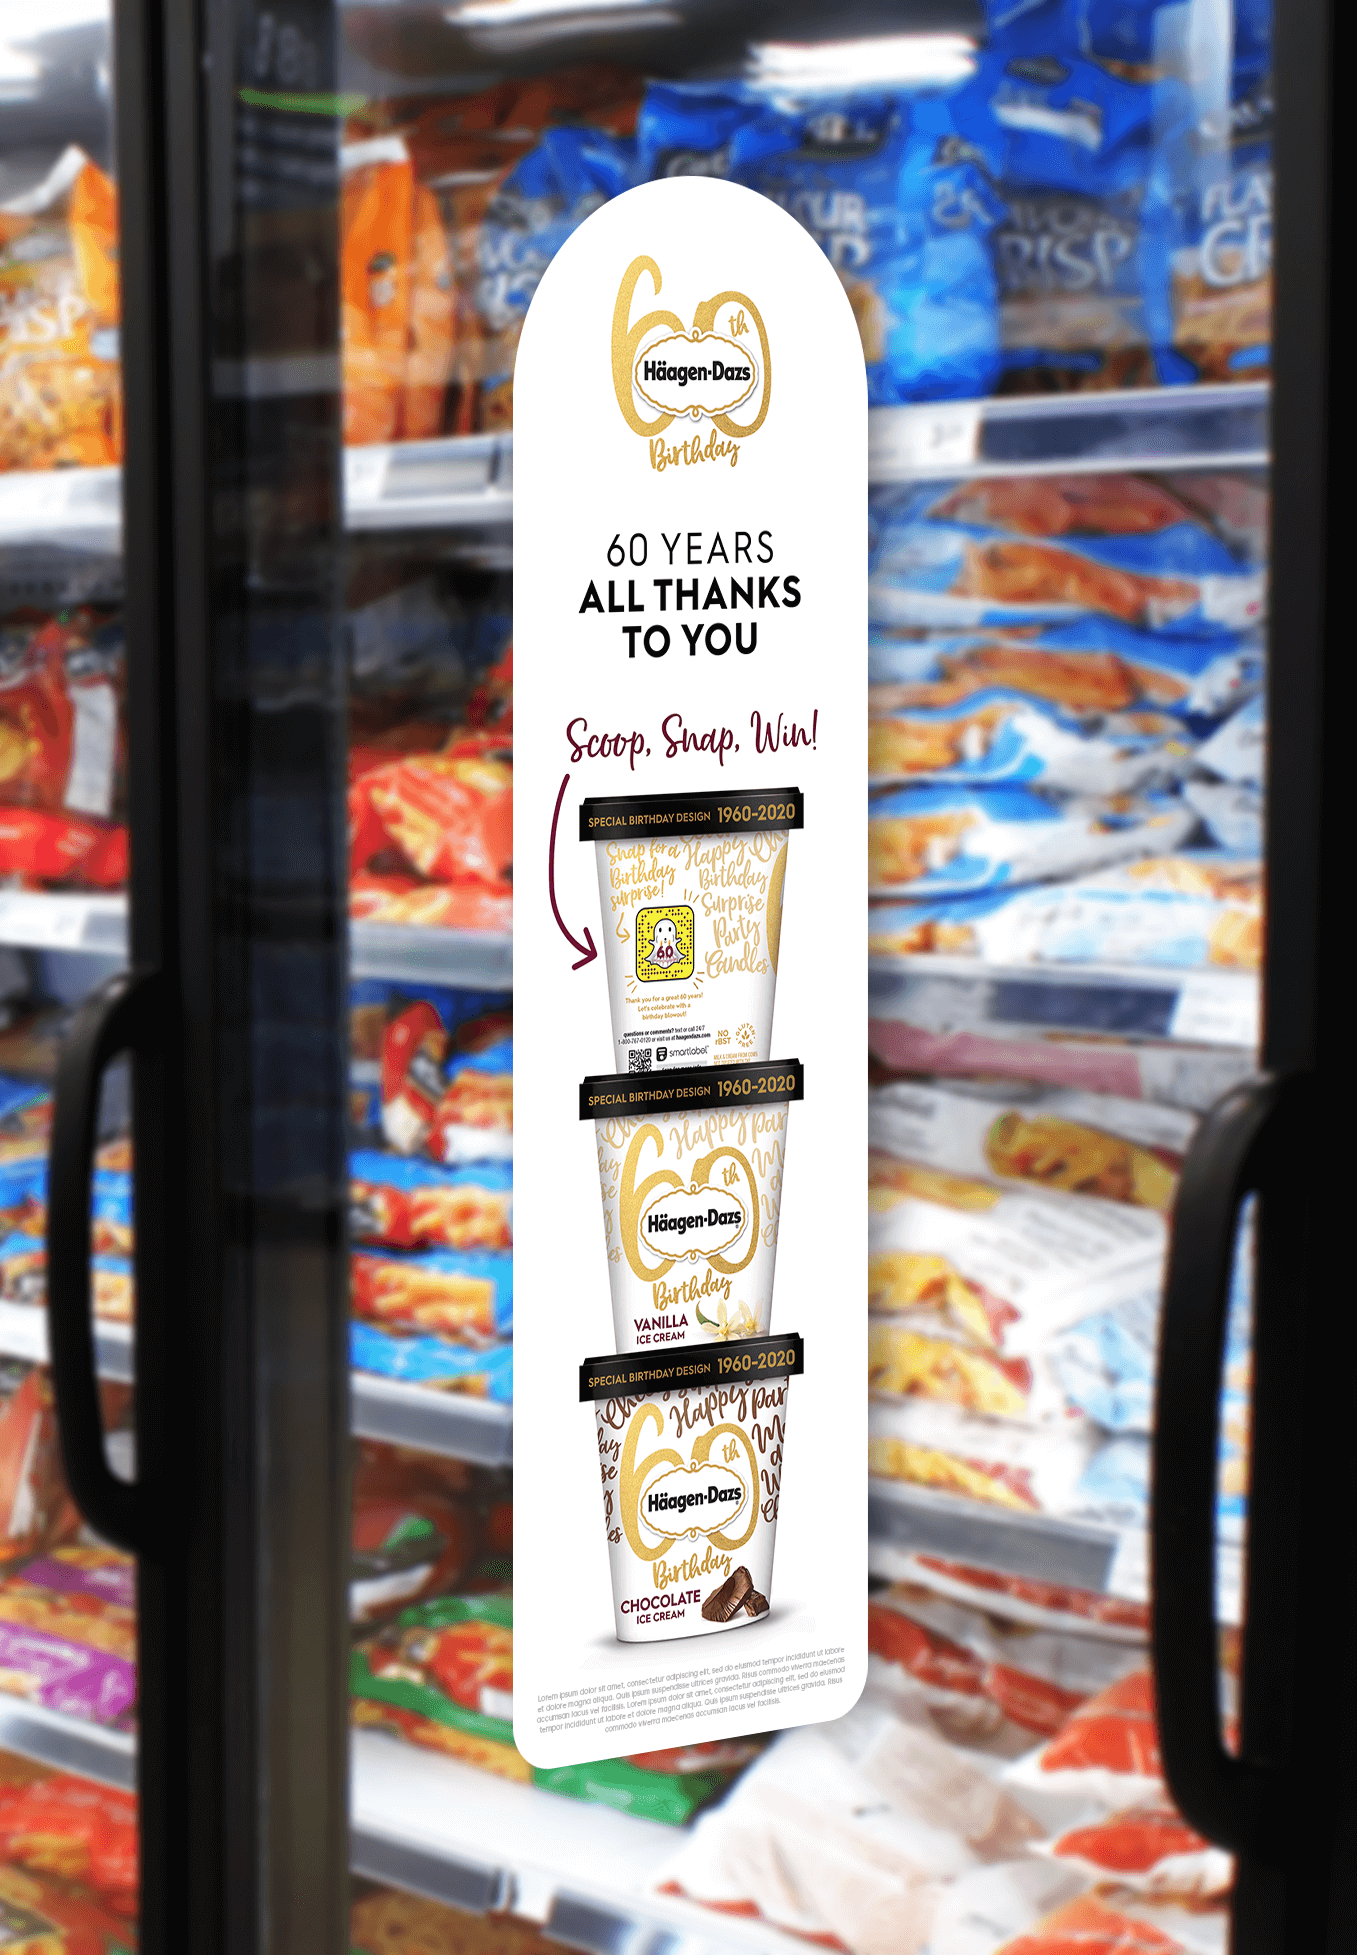 Alcone dialed up the appetite appeal with decadent signage that got shoppers in the mood for their favorite flavors.